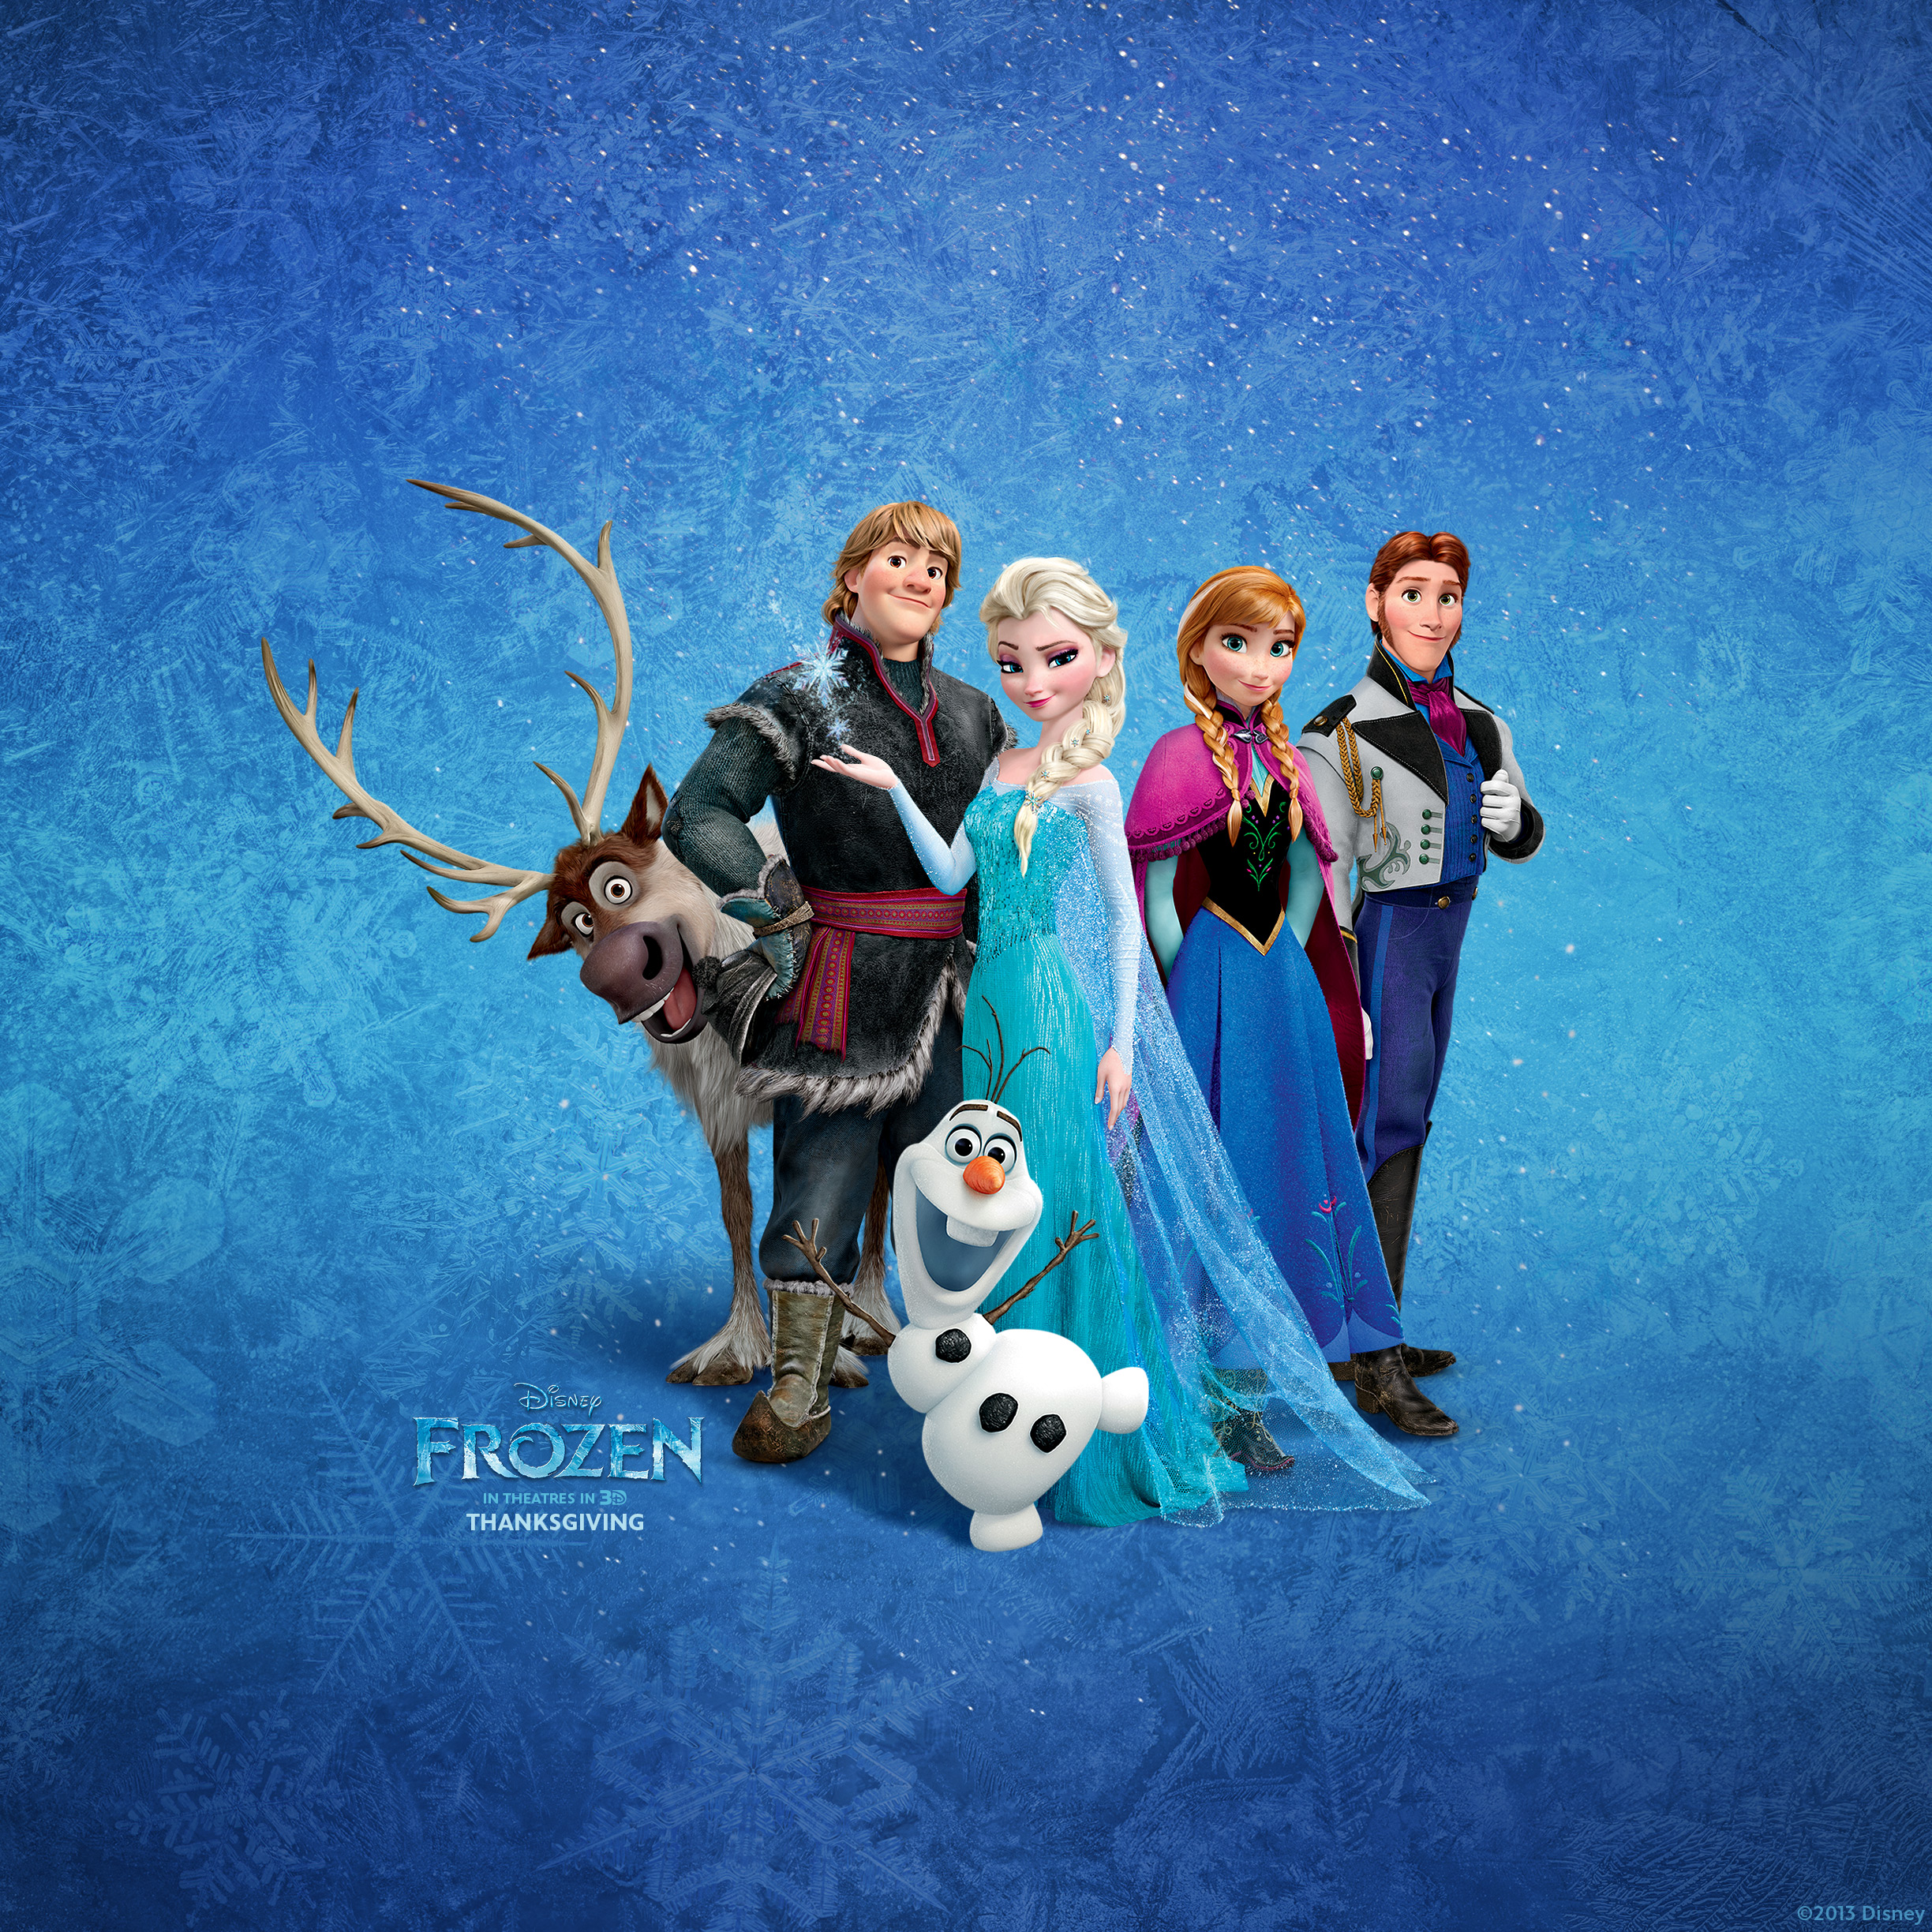 Frozen Images Frozen HD Wallpaper And Background Photos 35895055